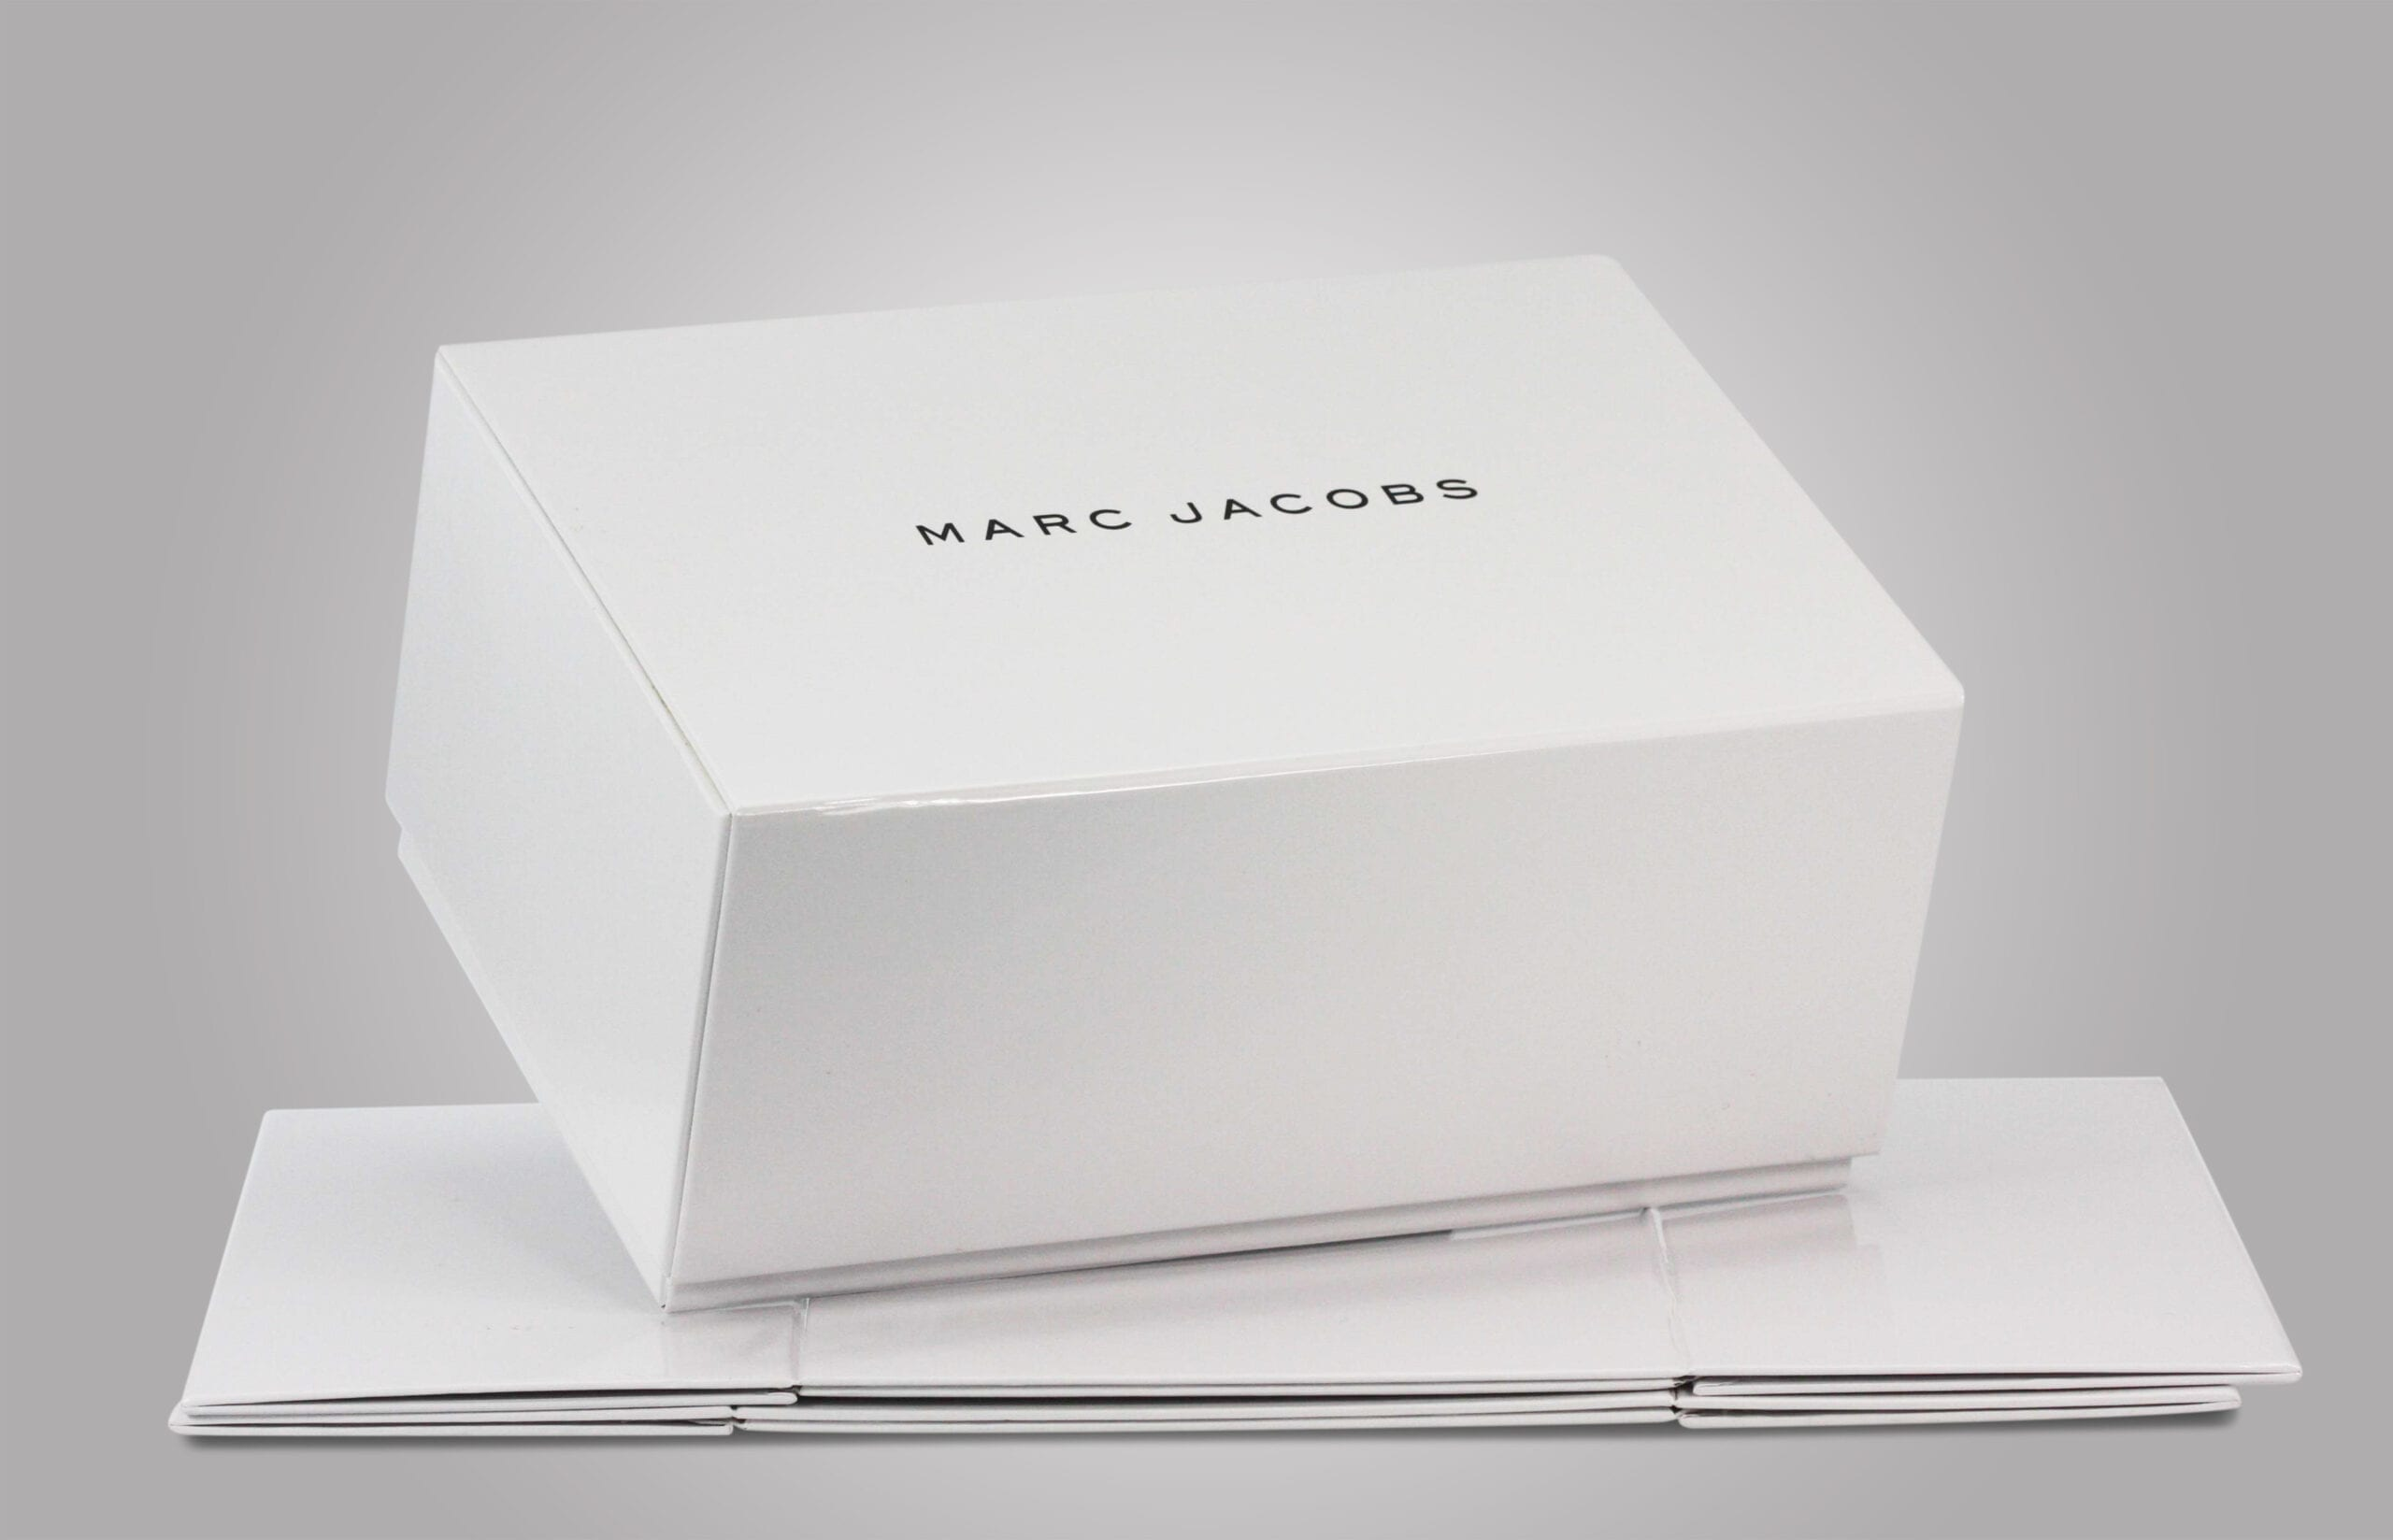 A custom designed collapsible box can be made simplistically stylish here at PPD&G, thanks to our numerous finishing capabilities. These custom knockdown boxes are proof of what we can do here at PPD&G when it comes to custom designed packaging.